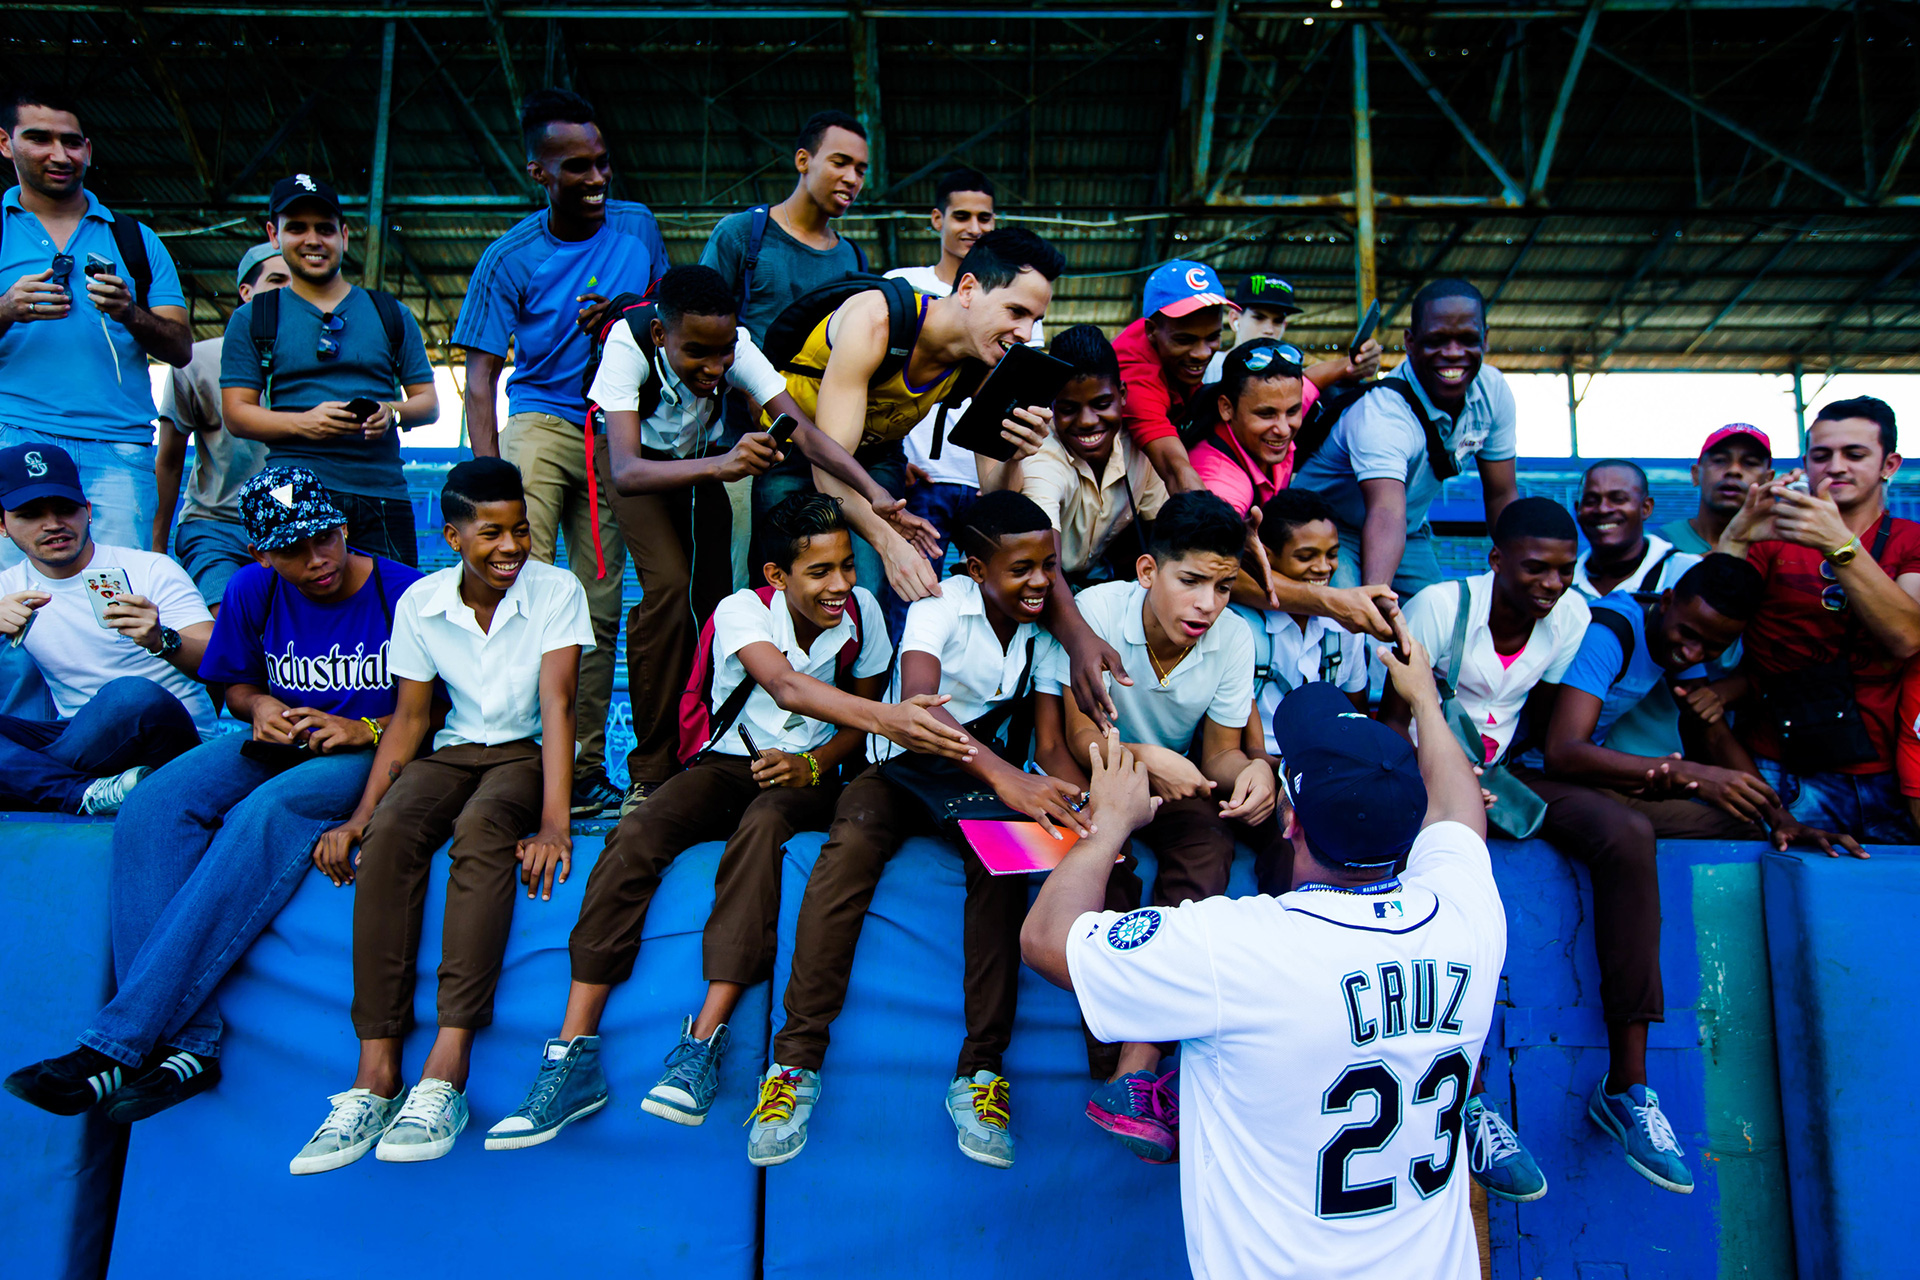 Nelson Cruz takes time to meet some fans.